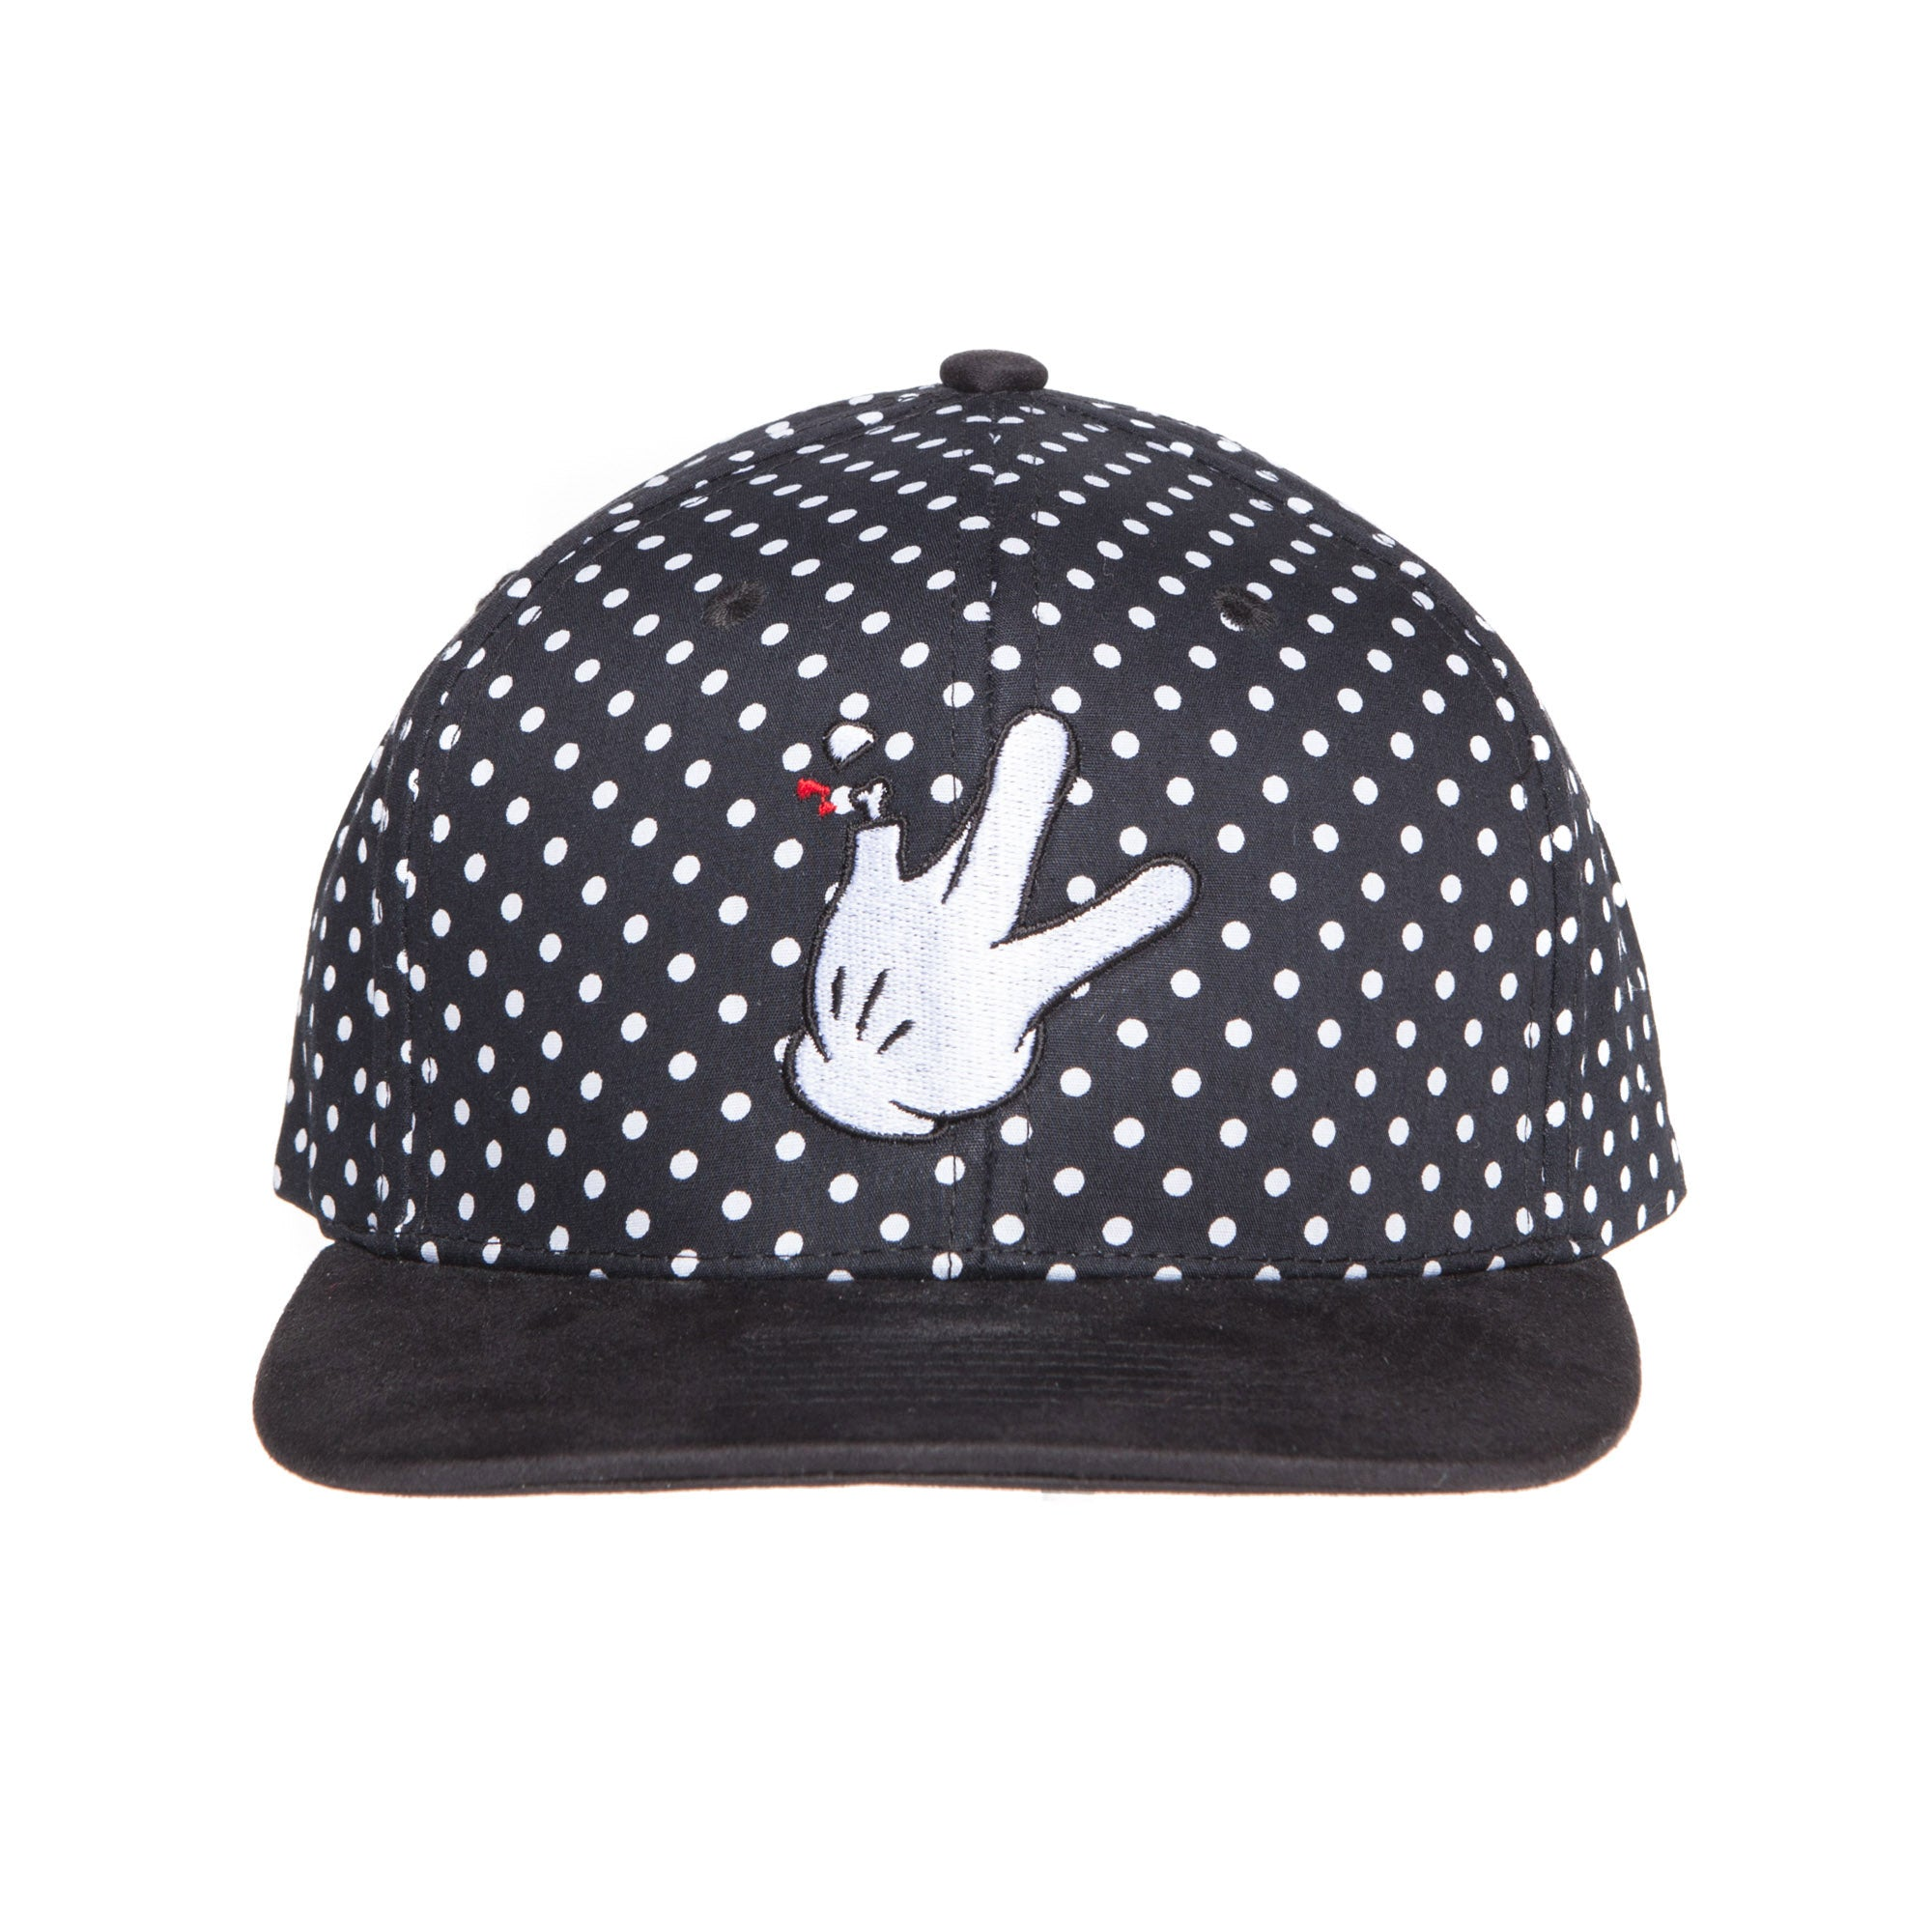 "Polka Dot Suede Flat Bill RaceKraft ""Glove"" Strap Back Hat"